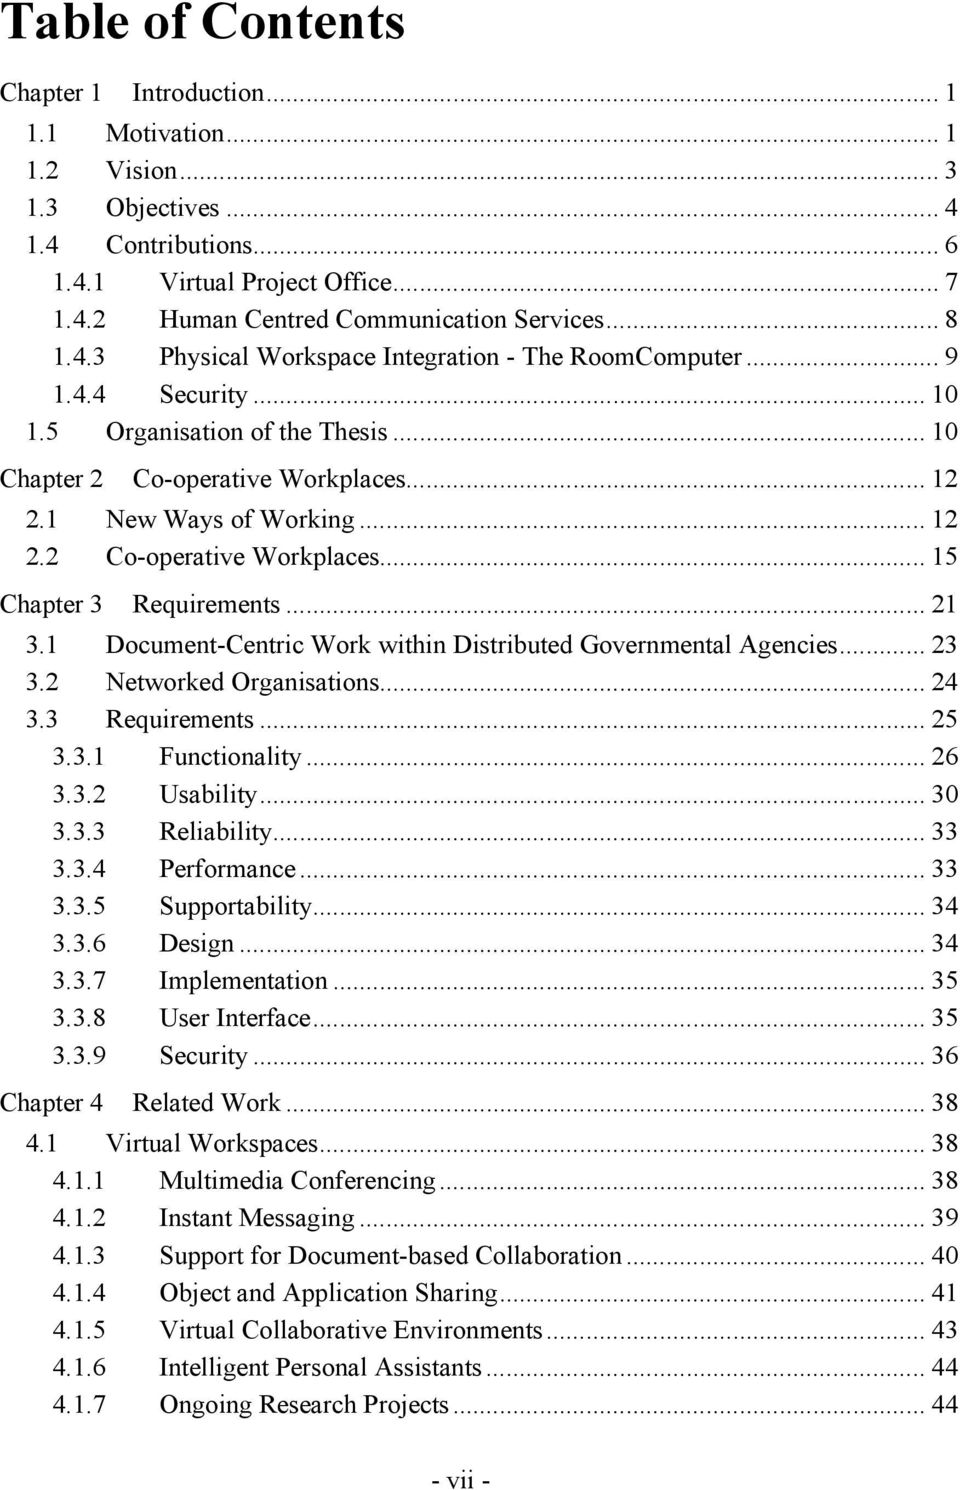 1 New Ways of Working...... 1 2 2.2 C o-operative Workplaces...... 1 5 Chapter 3 Requirements...... 2 1 3.1 Document-Centric Work within Distributed Governmental Agencies... 2 3 3.